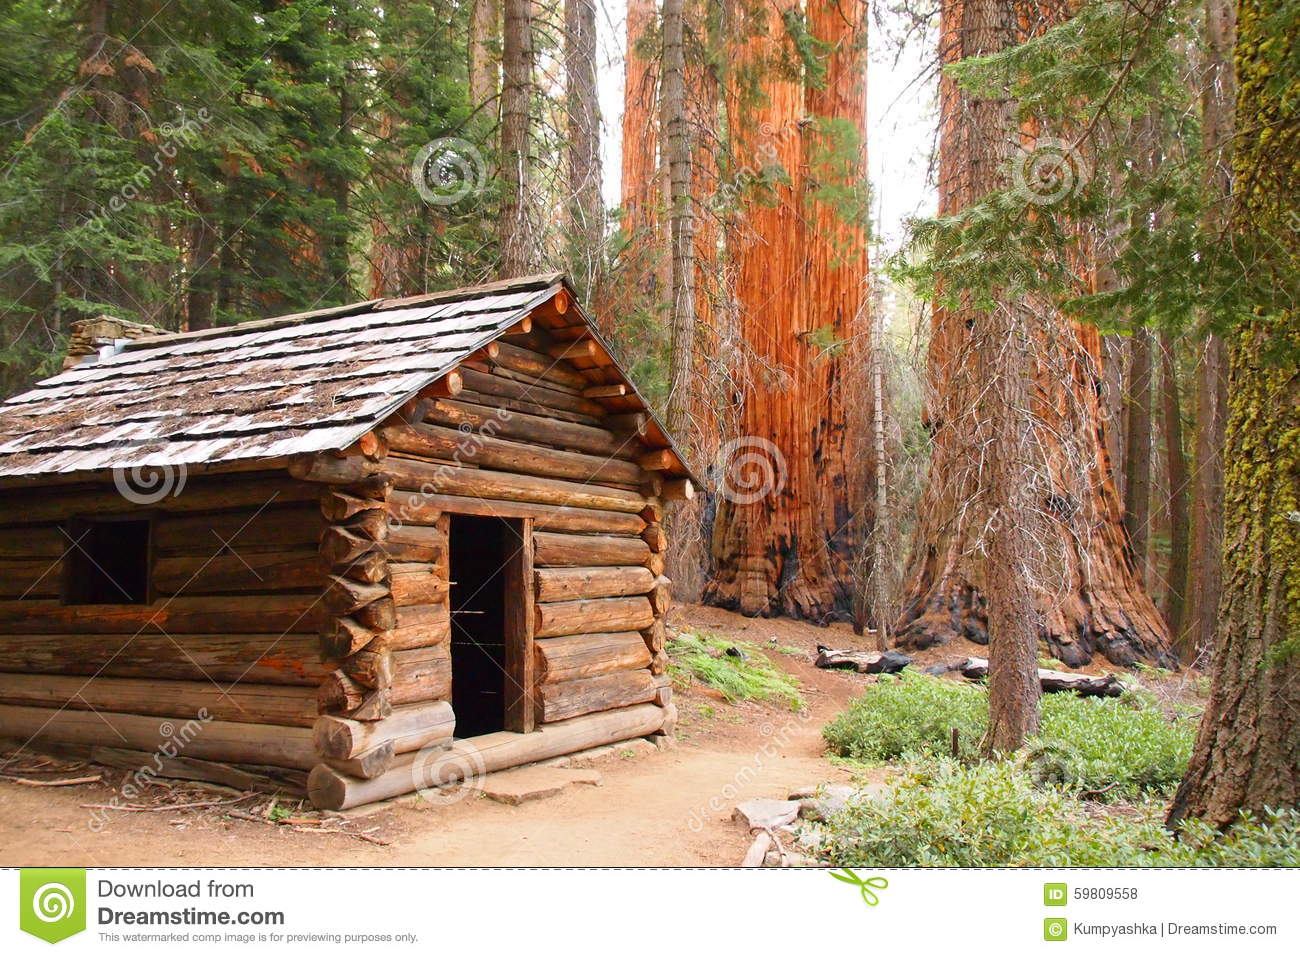 bed national area s park from beautiful views luxury crystal deal property to cabin the newly image yards ha home and built in sequoia beach conservation close cabins